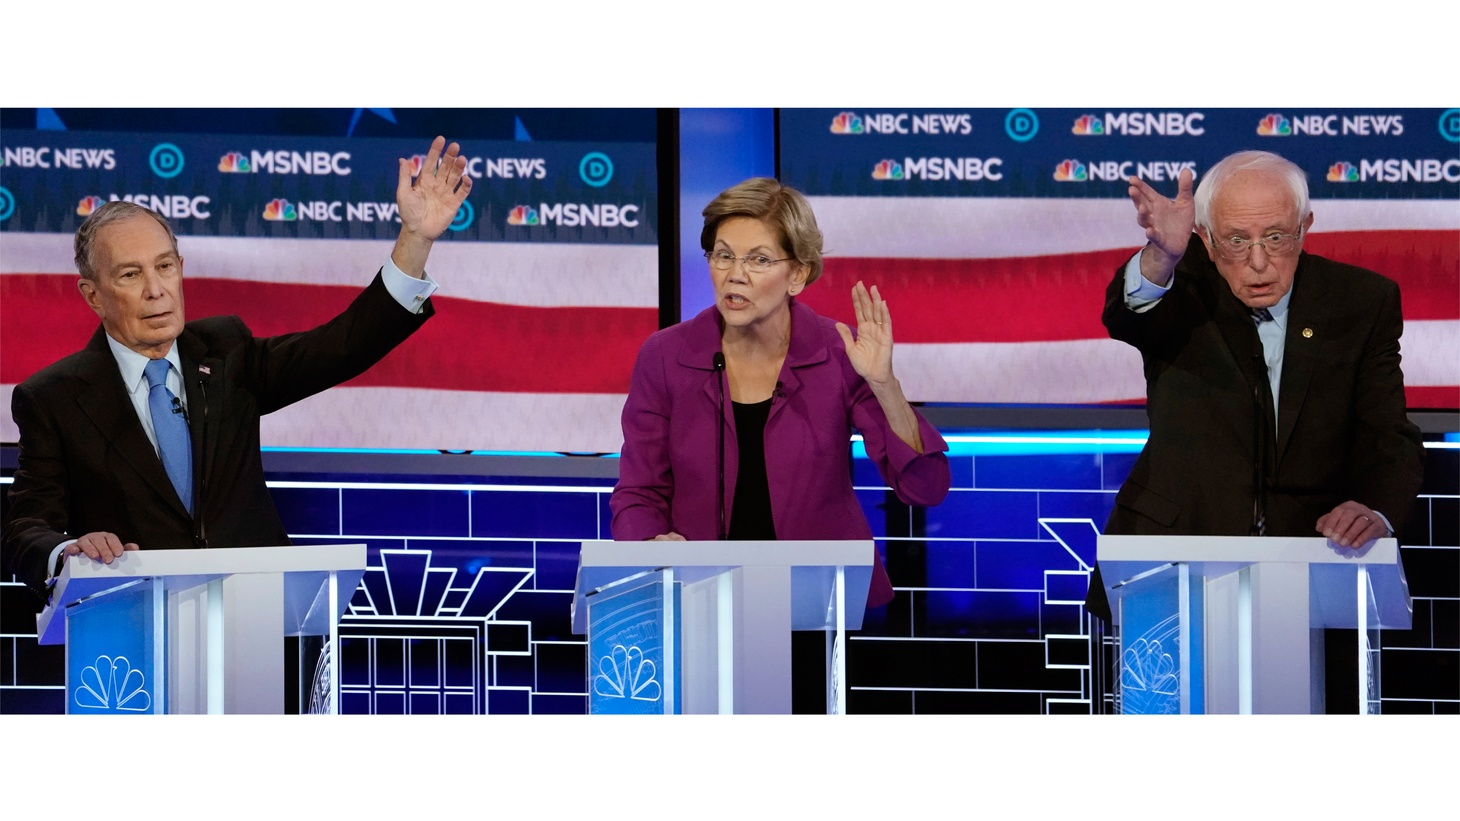 Senator Elizabeth Warren speaks as former New York City Mayor Mike Bloomberg and Senator Bernie Sanders try to get the moderators attention at the ninth Democratic 2020 U.S. Presidential candidates debate at the Paris Theater in Las Vegas, Nevada, U.S., February 19, 2020.